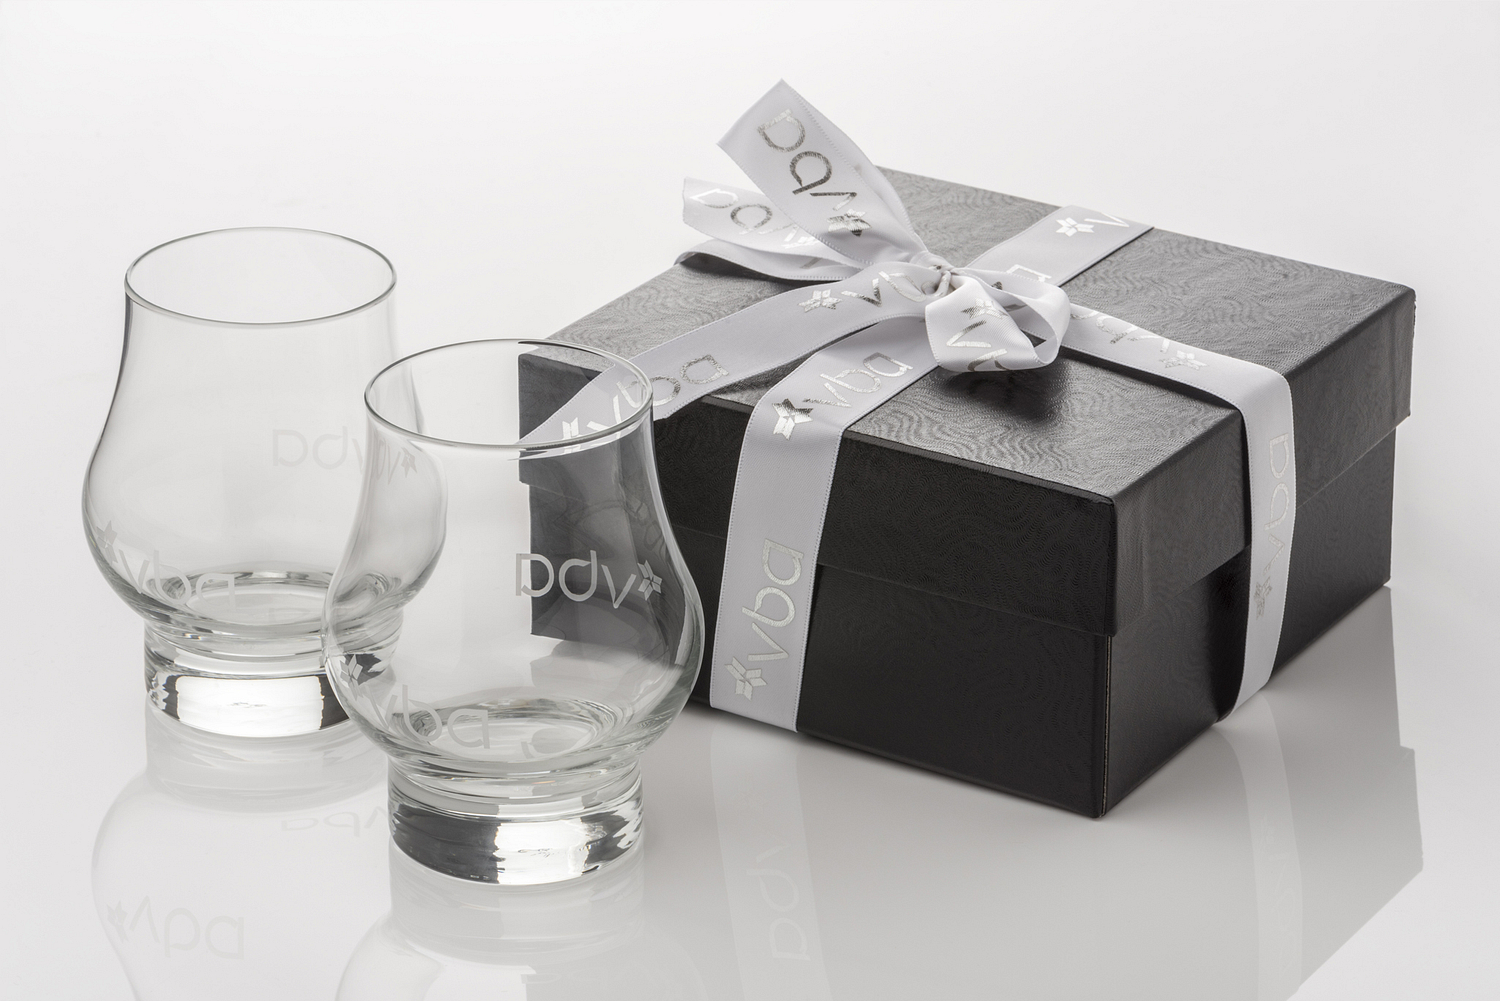 Advertising specialties engraved glasses and box, Baltimore